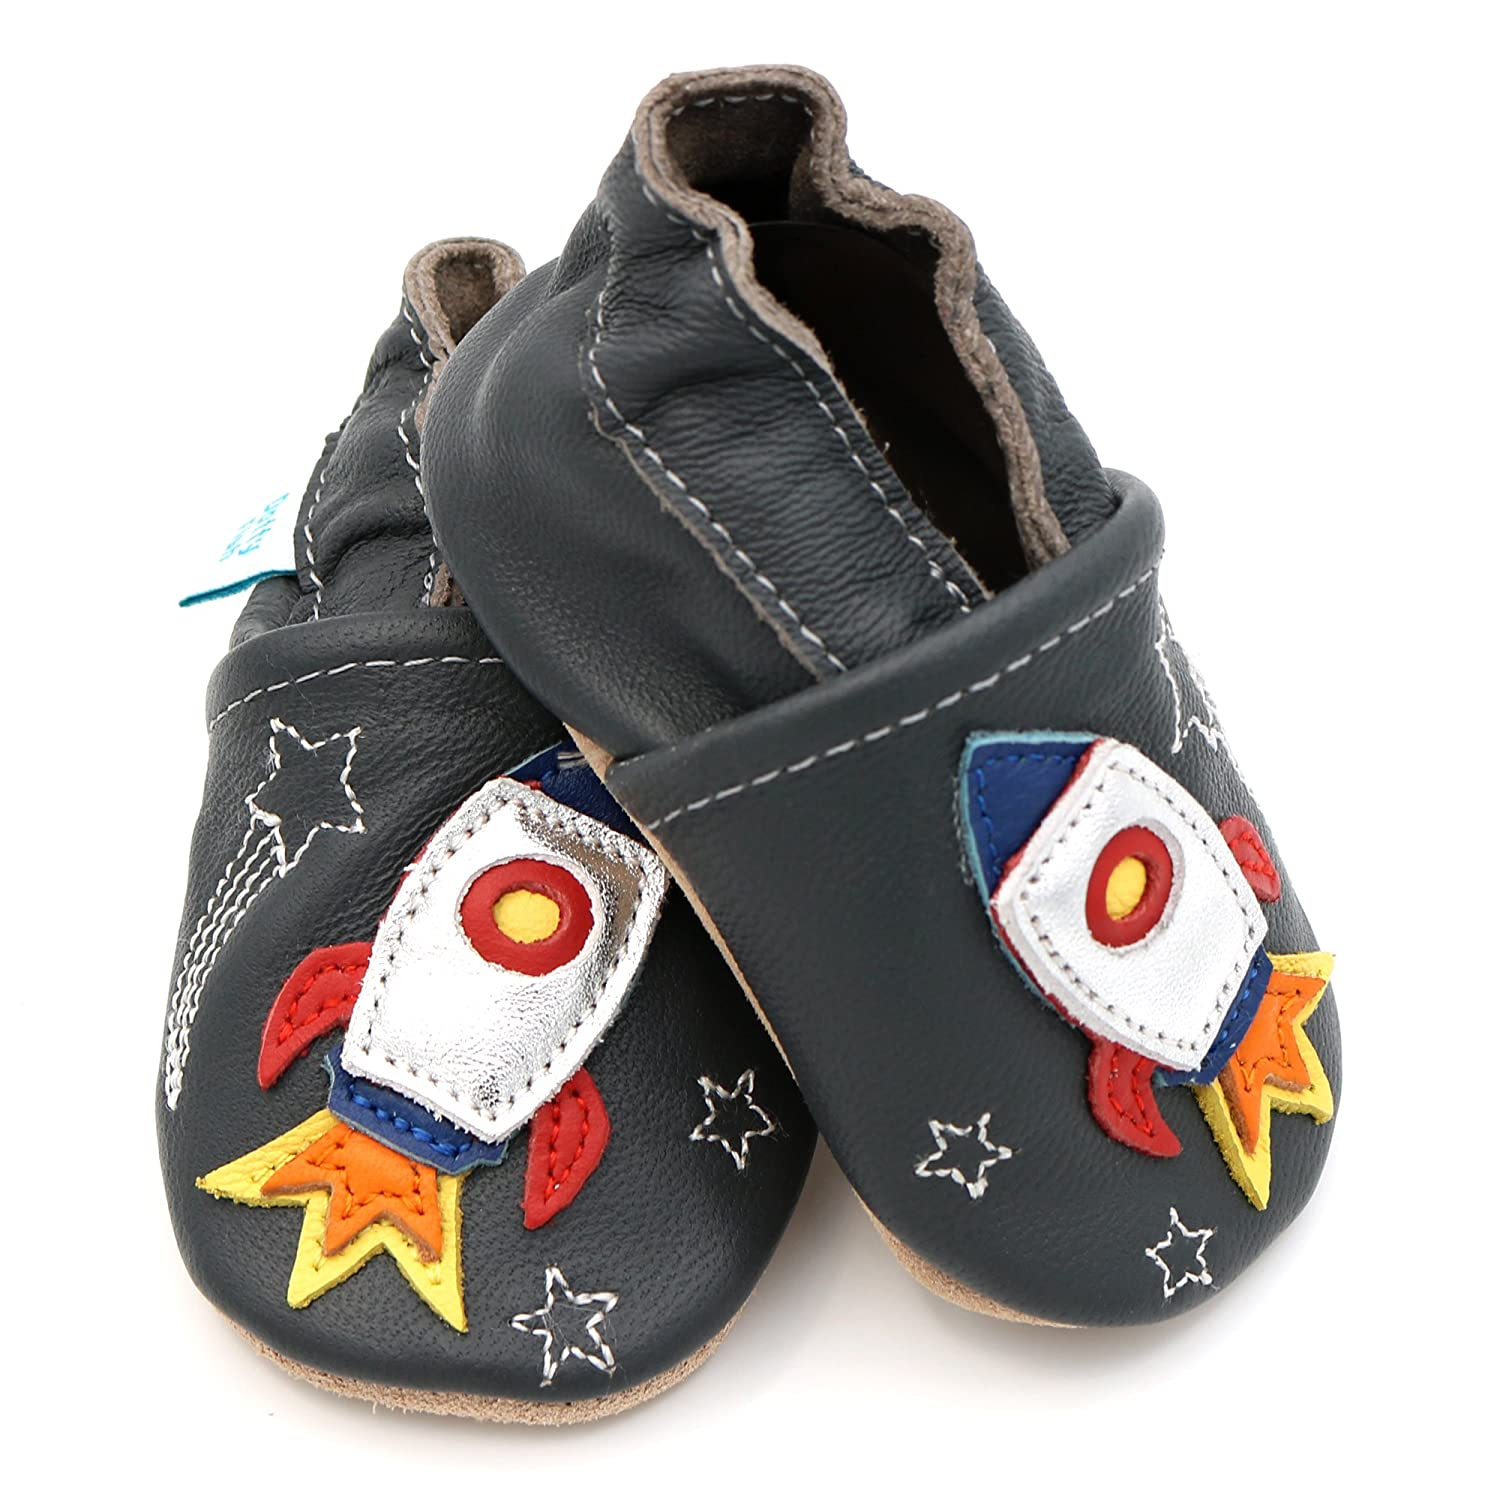 Space and Anchor Designs for Boys Toddler Shoes. Dotty Fish Soft Leather Baby Shoes Non-Slip Suede Soles Cars 0-6 Months to 4-5 Years